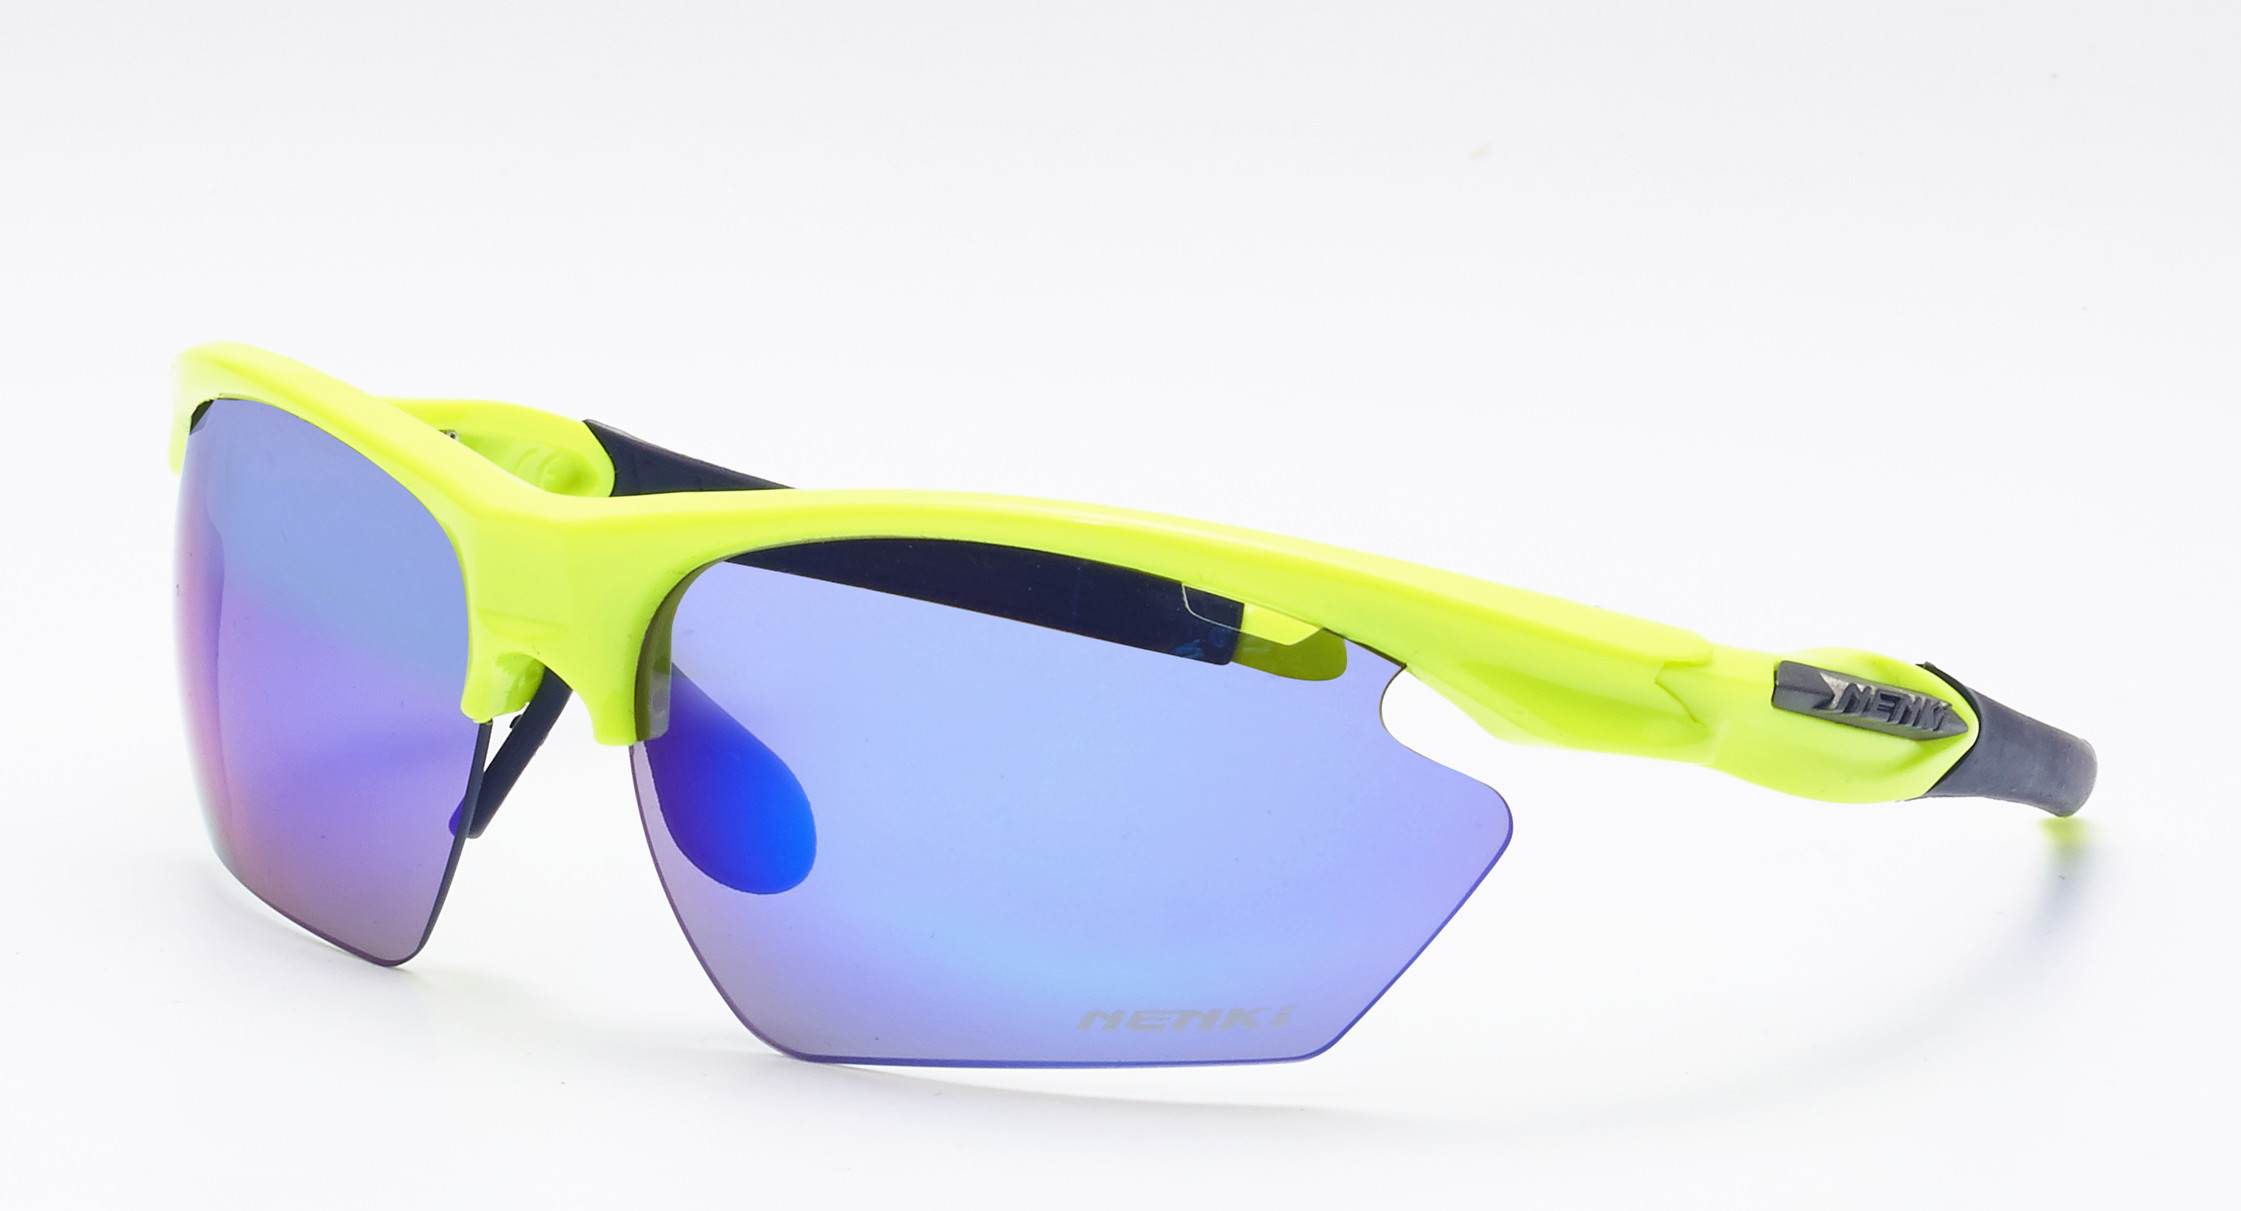 e22591f2ba ... Nenki Sports Cycling Sunglasses Uv400 With Prescription Insert For buy  5ca46 edb42 . ...